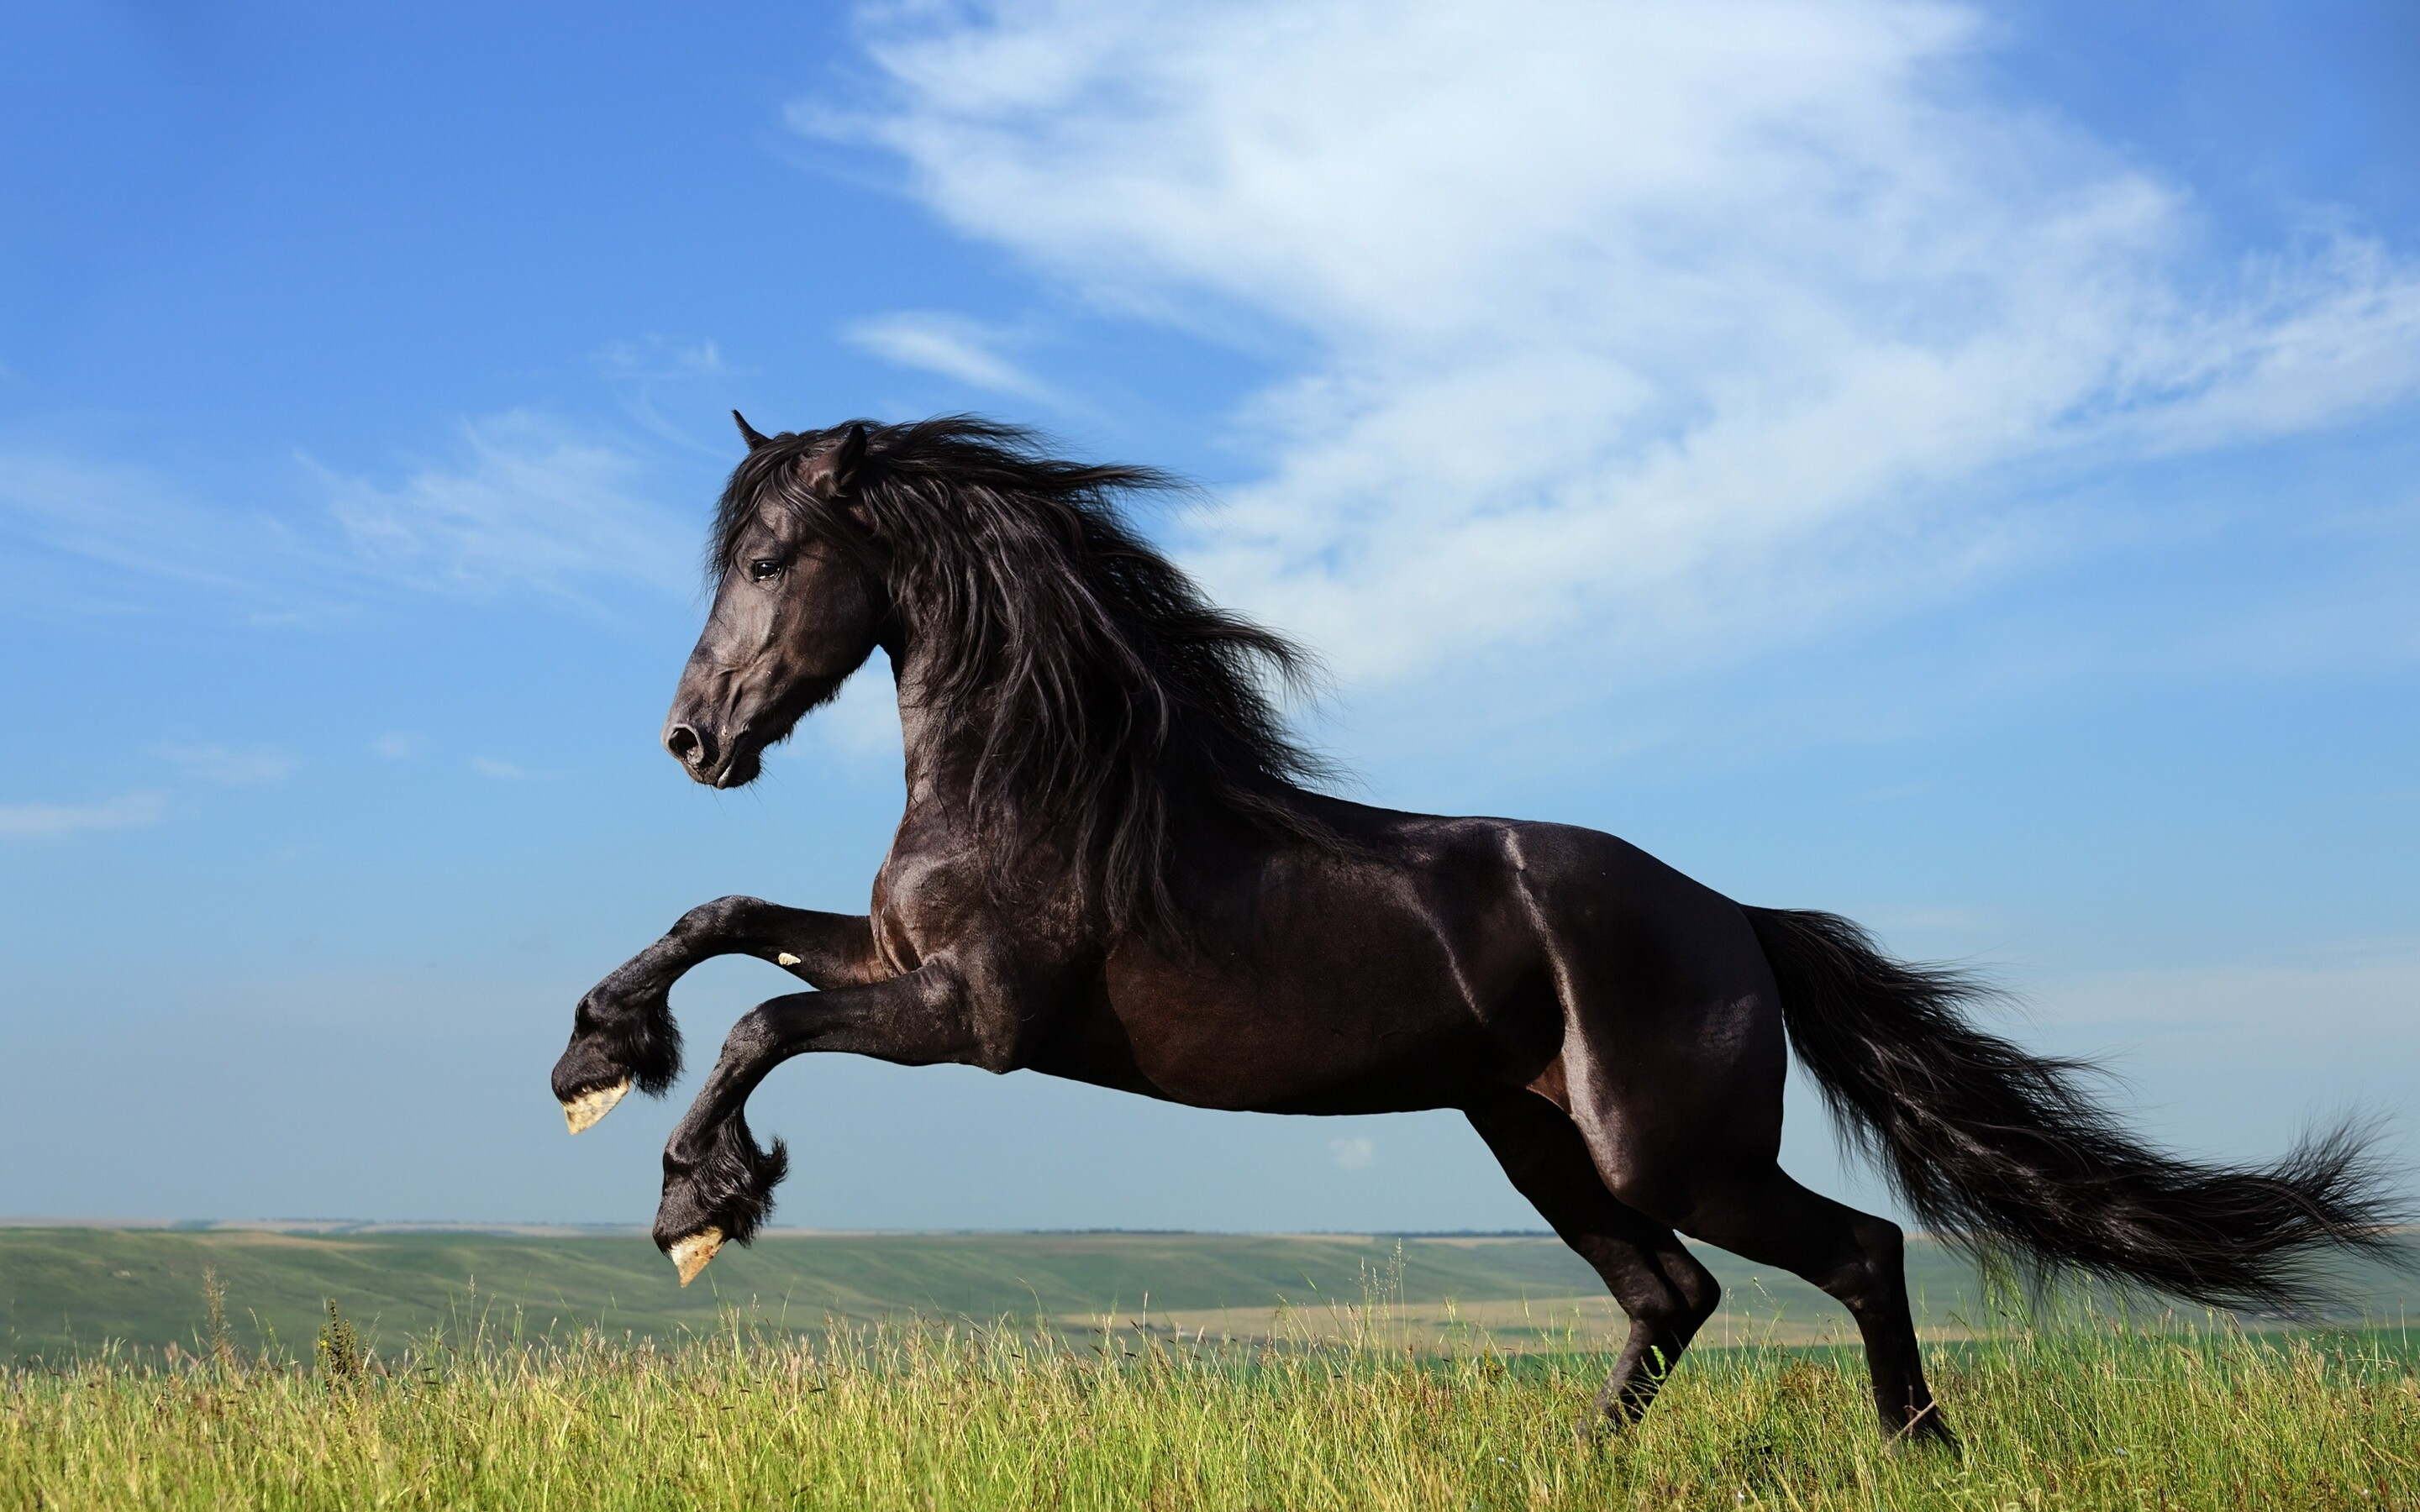 3d Animation Wallpaper For Pc Download 2880x1800 Horse Jump Macbook Pro Retina Hd 4k Wallpapers